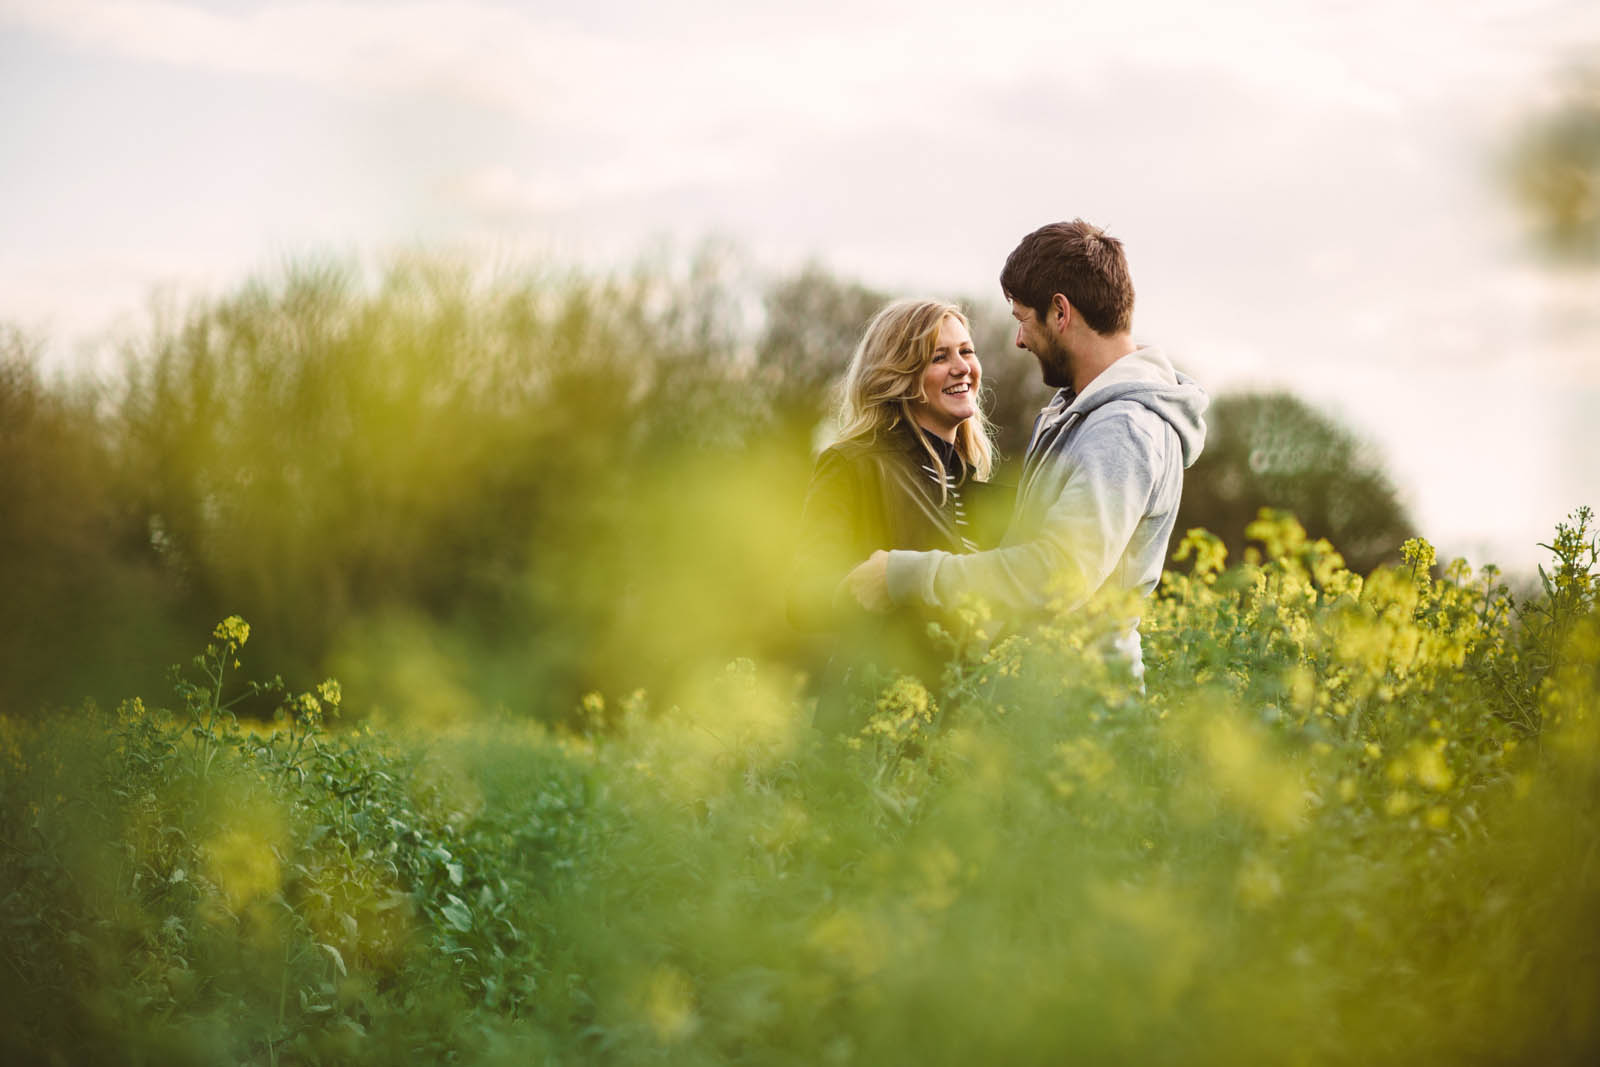 Finedon-Pocket-Park-Engagement-Session-16